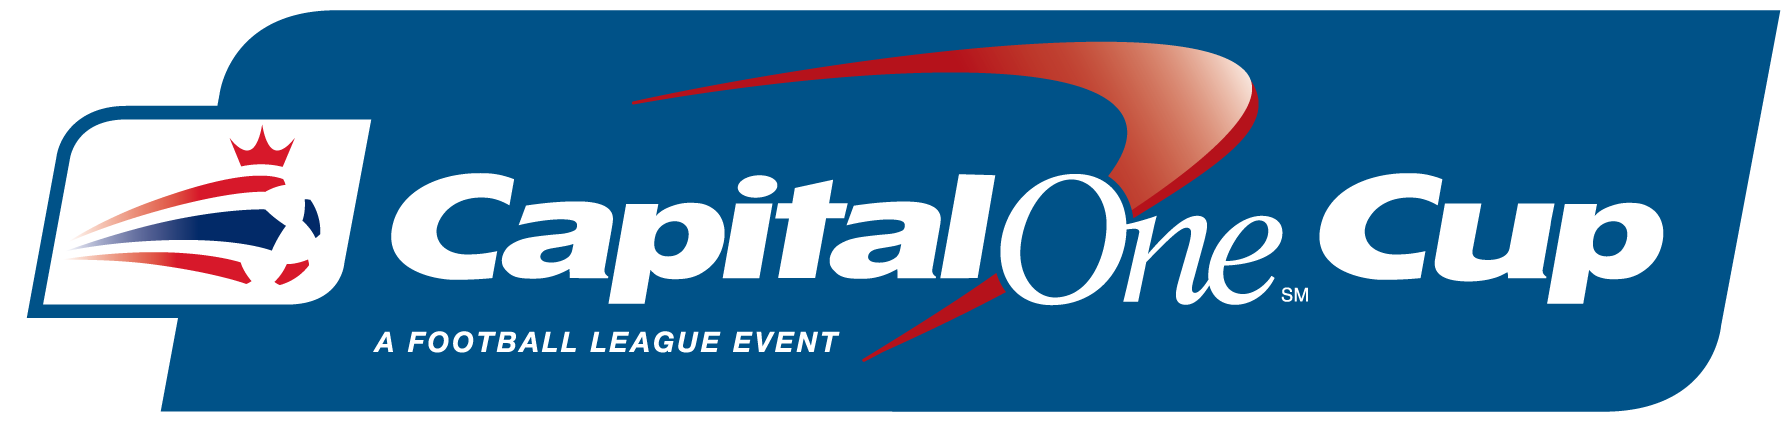 Capital One Credit Cards Bank and Loans  Personal and